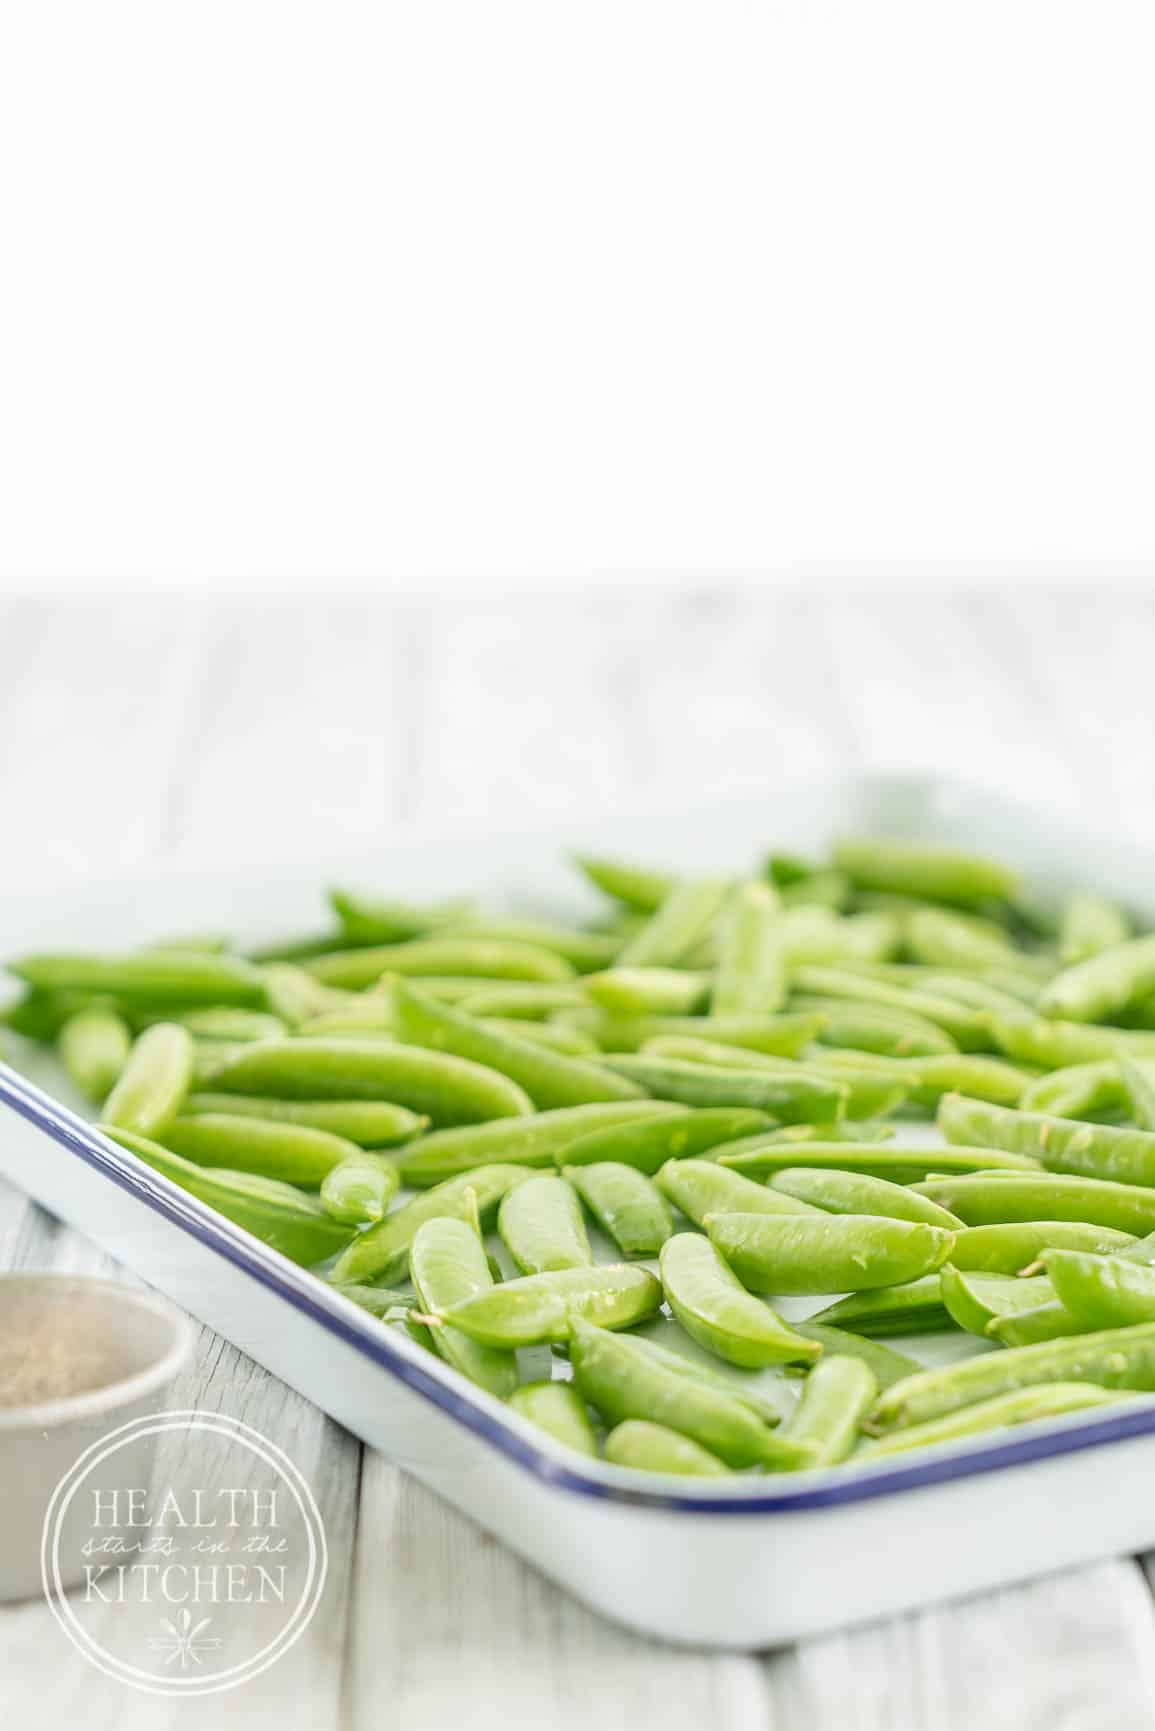 My Parmesan Garlic Roasted Sugar Snap Peas are a fun way to enjoy an old favorite vegetable.